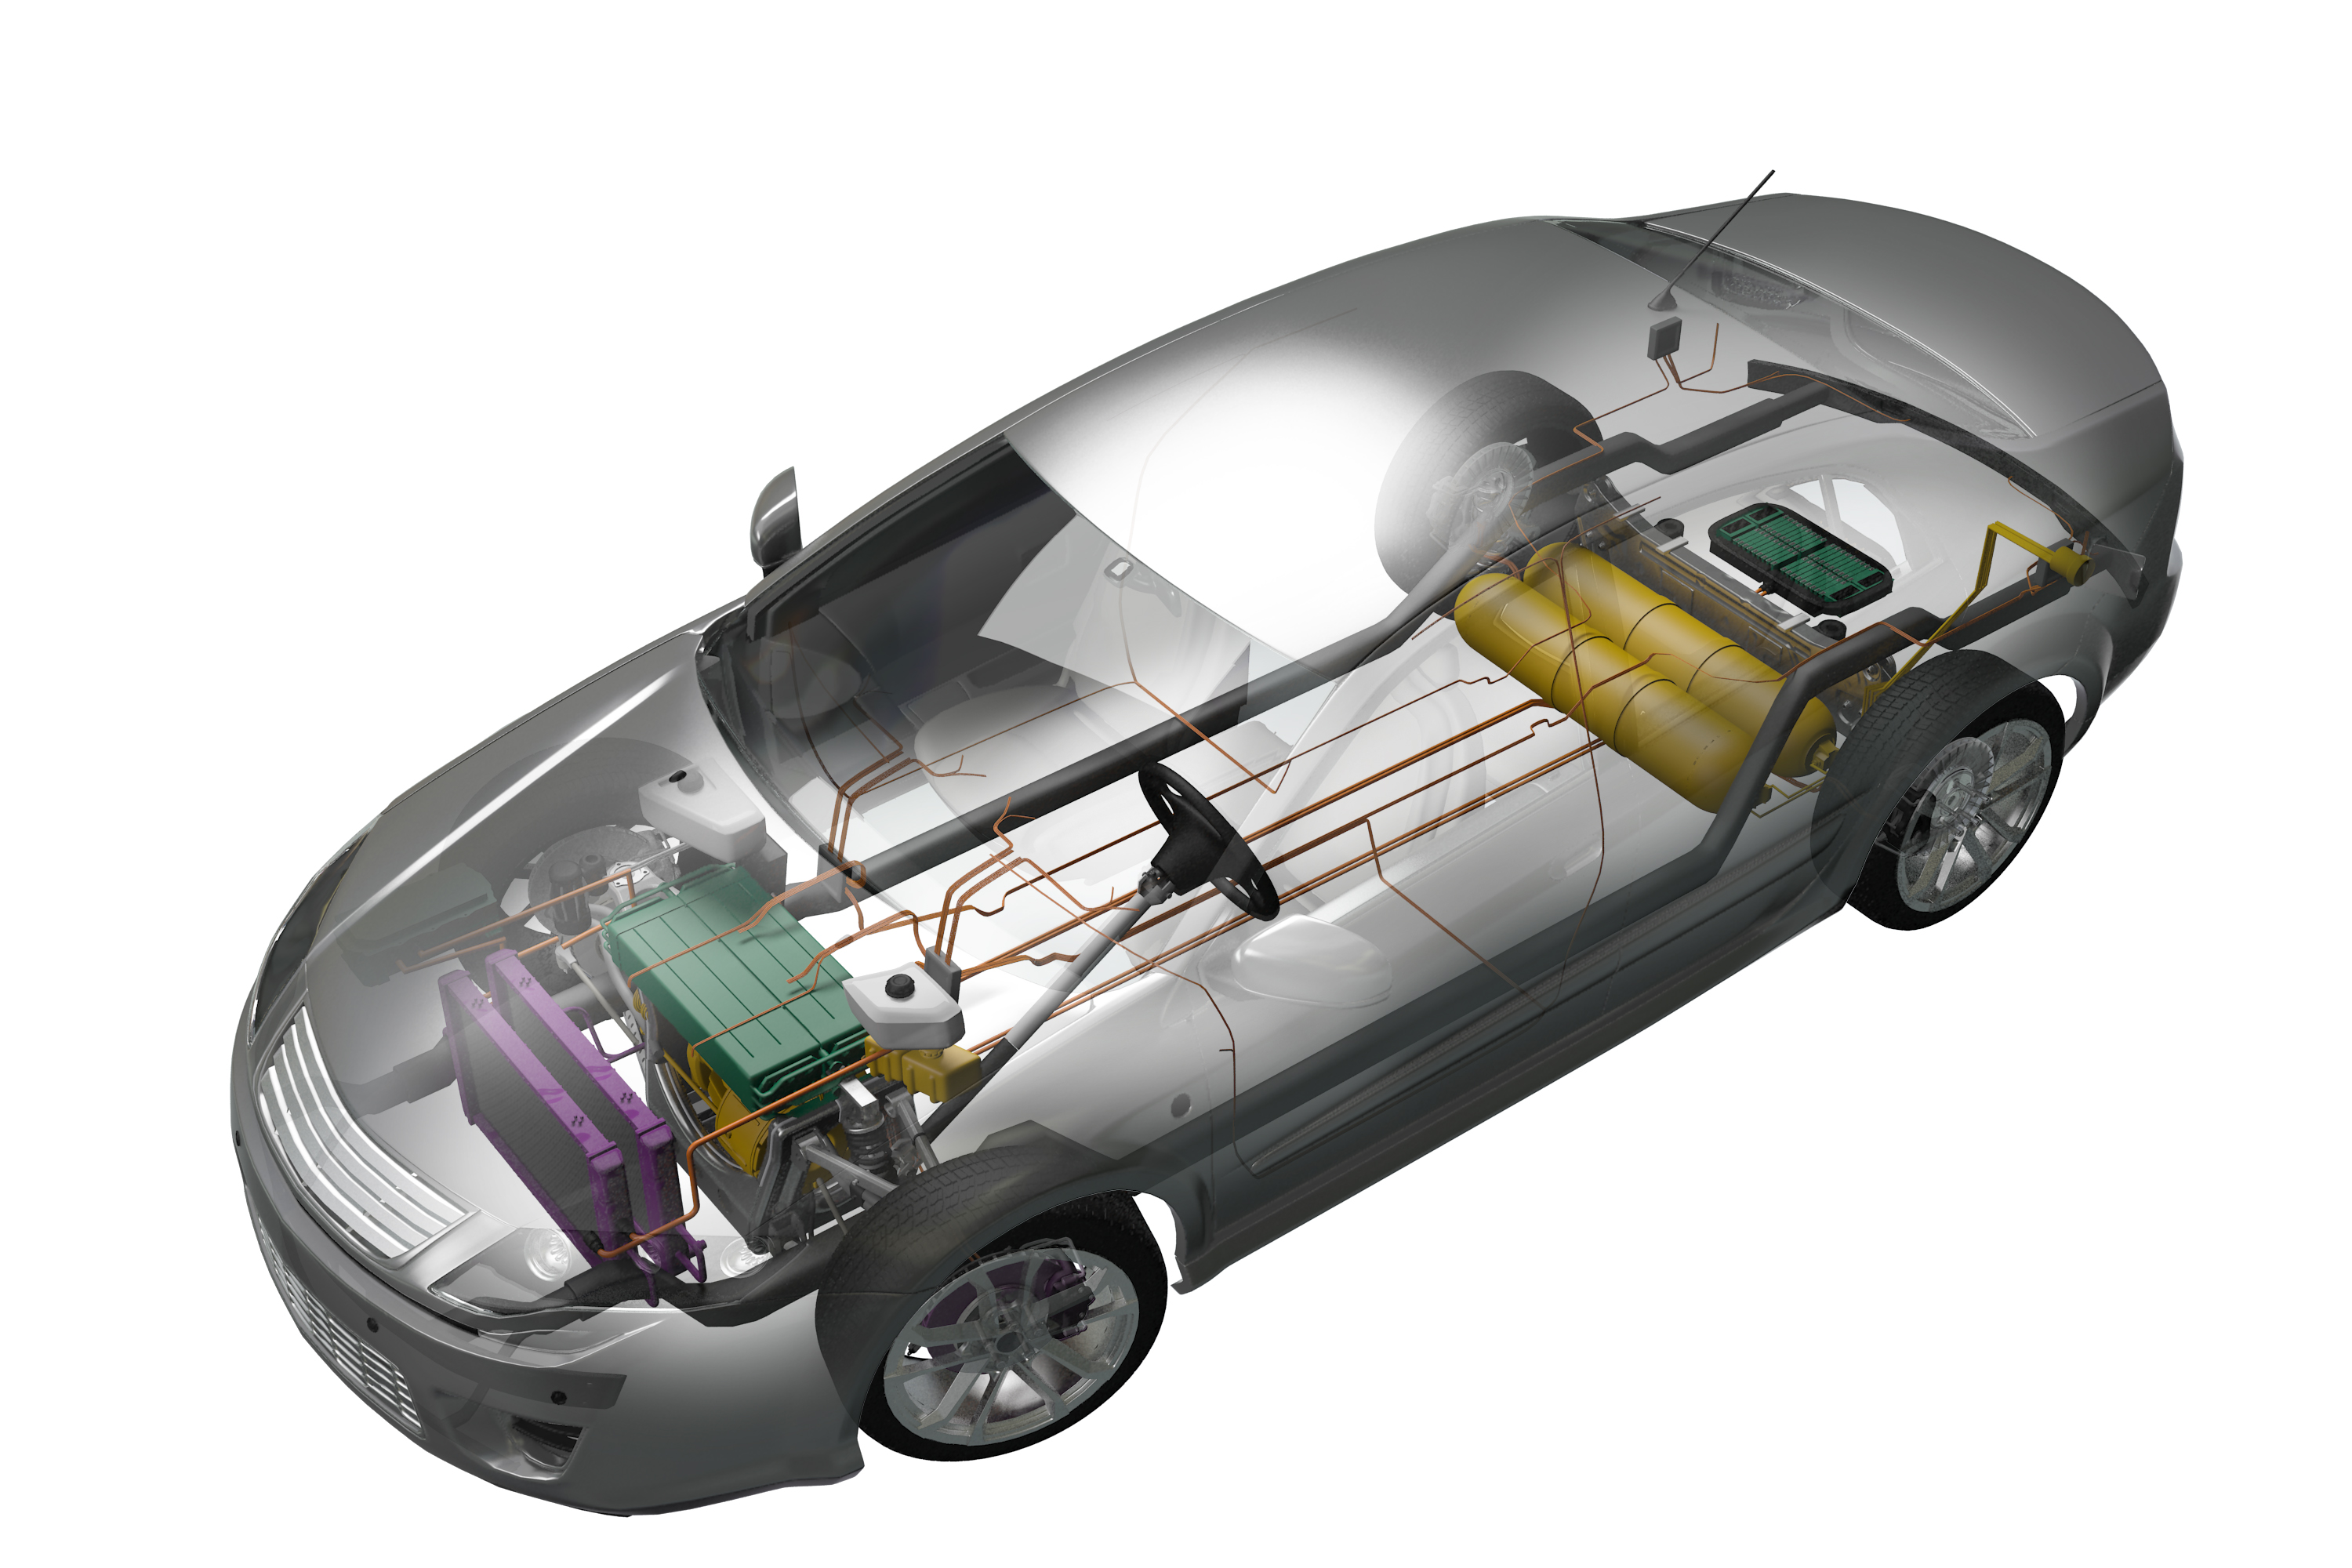 hydrogen vehicle A hydrogen vehicle is a vehicle, such as an automobile, aircraft, or any other kind of vehicle that uses hydrogen as its primary source of power for locomotion.